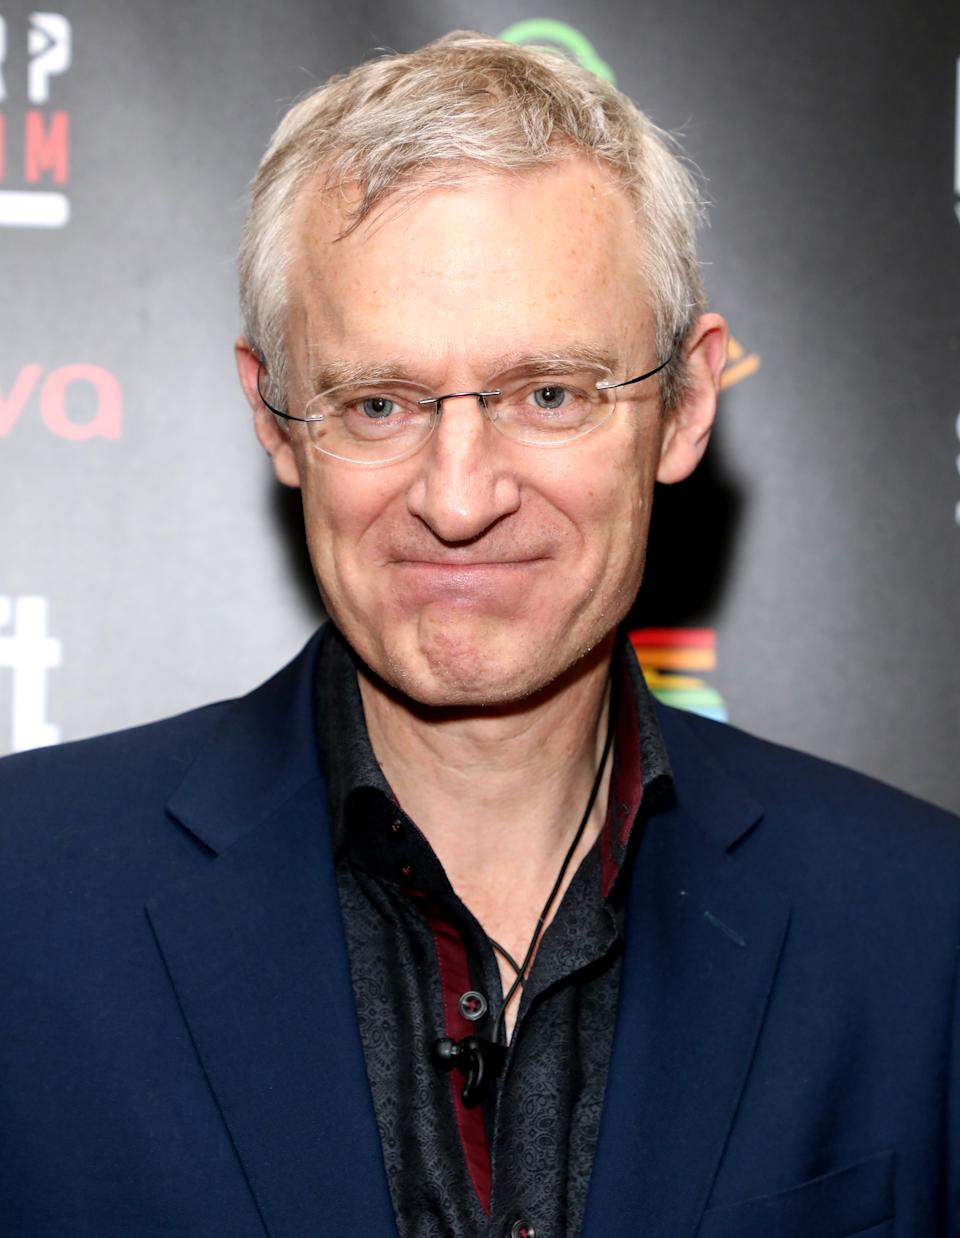 File photo dated 04/03/20 of Jeremy Vine attending The Audio and Radio Industry Awards held at The London Palladium, London. Jeremy Vine has said Channel 5 is treating quiz show Eggheads as if it is a